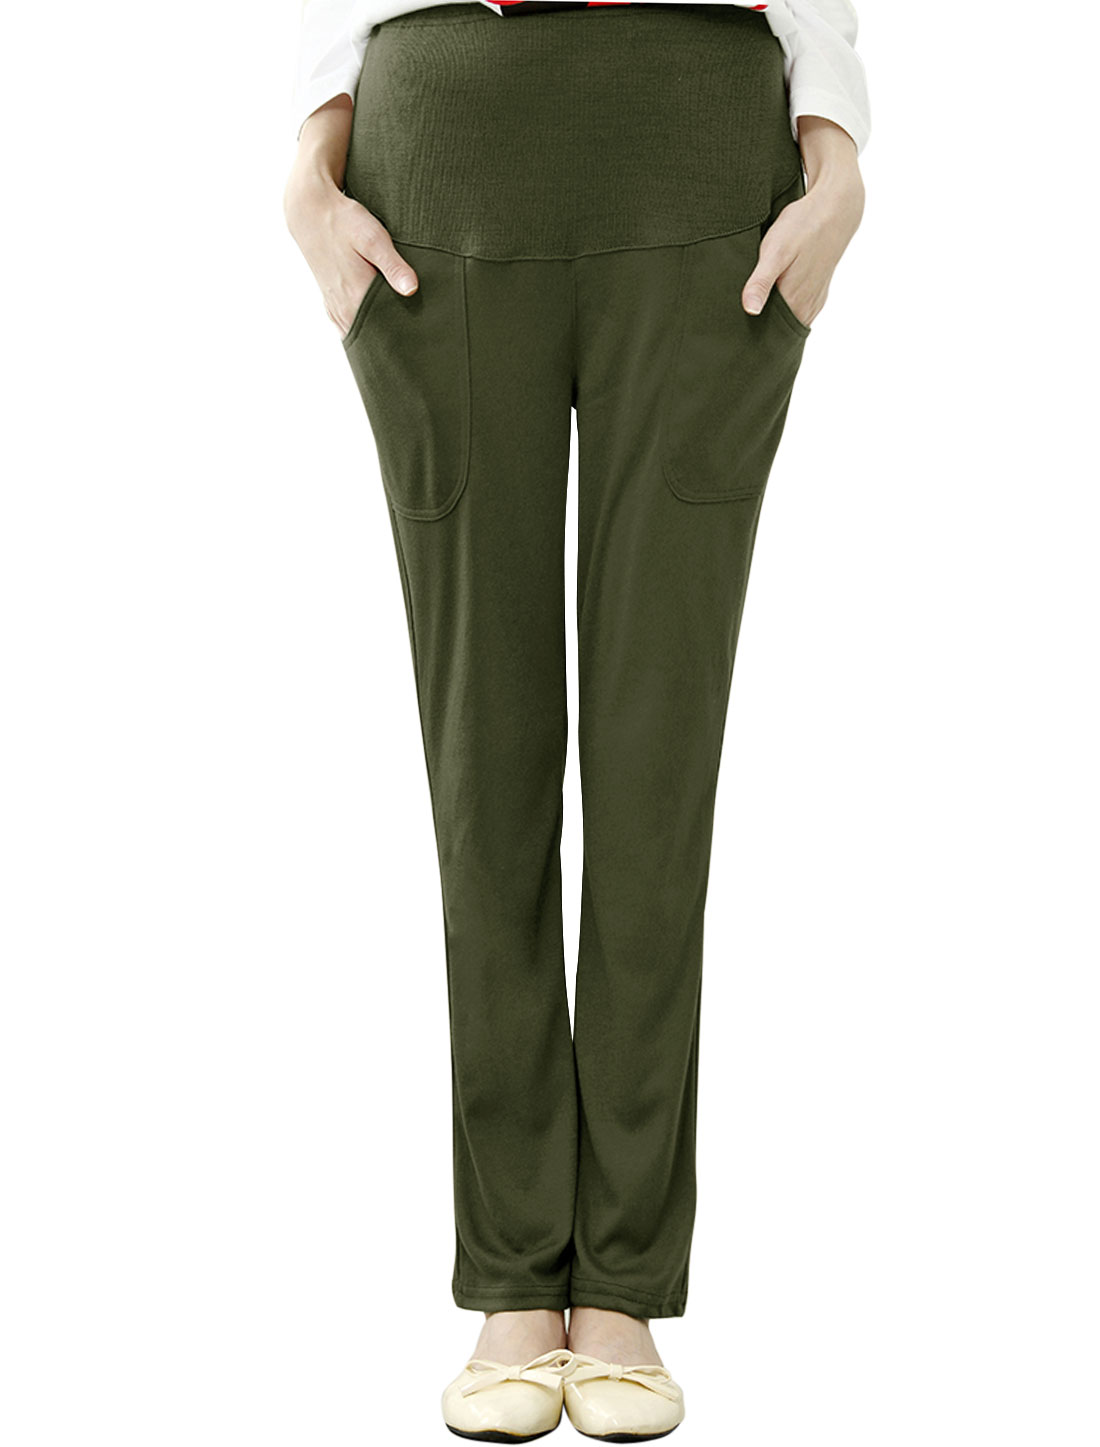 Maternity Adjustable Drawstring Waist Mid Rise Casual Pants Army Green XS